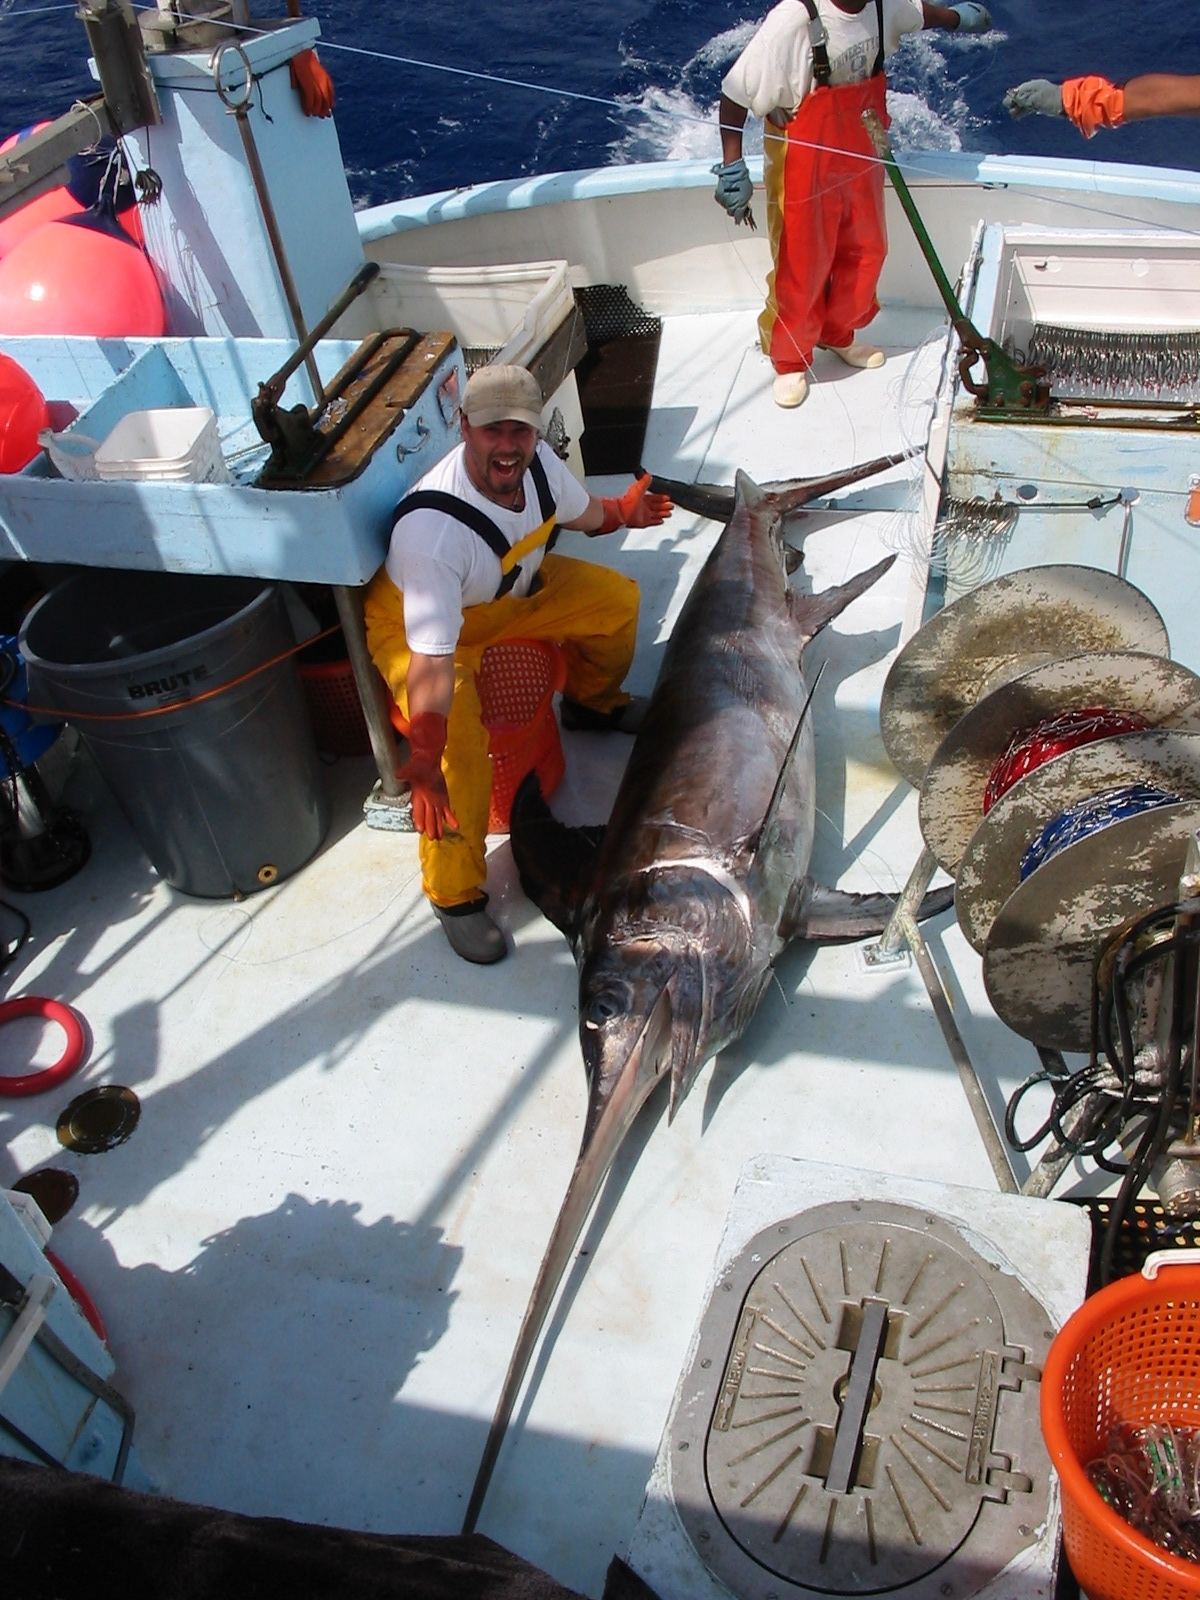 A fisherman poses with a swordfish on boat deck